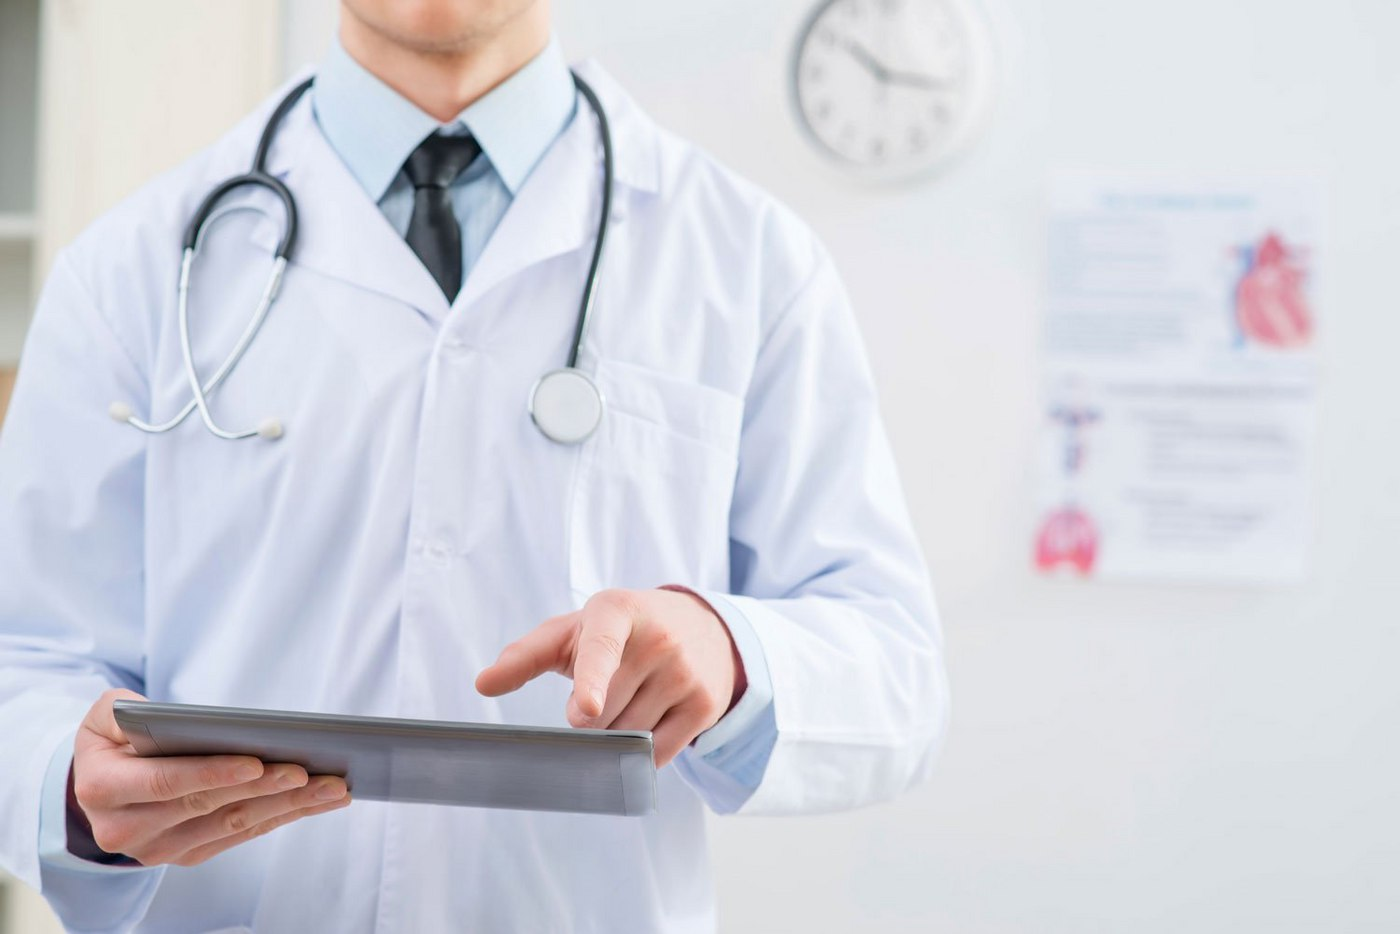 MACRA Proposed Rule Will Replace Meaningful Use for Eligible Providers